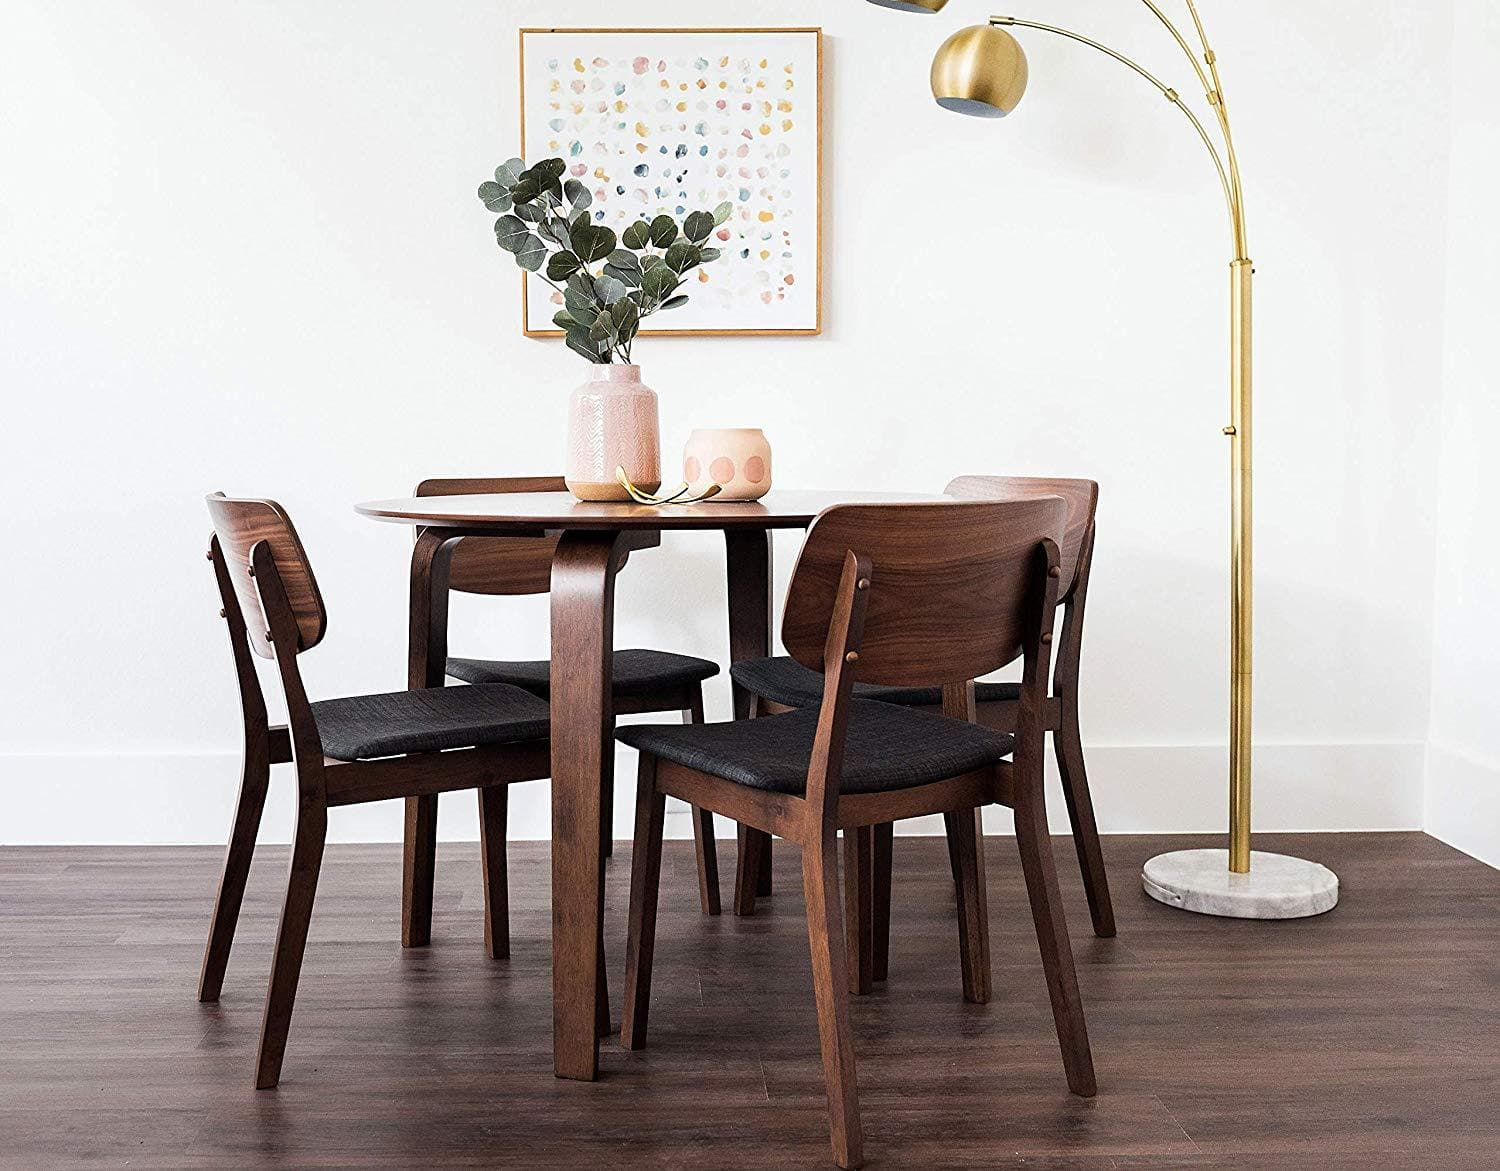 Dade Jackson 5 Piece Dining Table Set For 4 Small Kitchen Table Edloe Finch Furniture Co